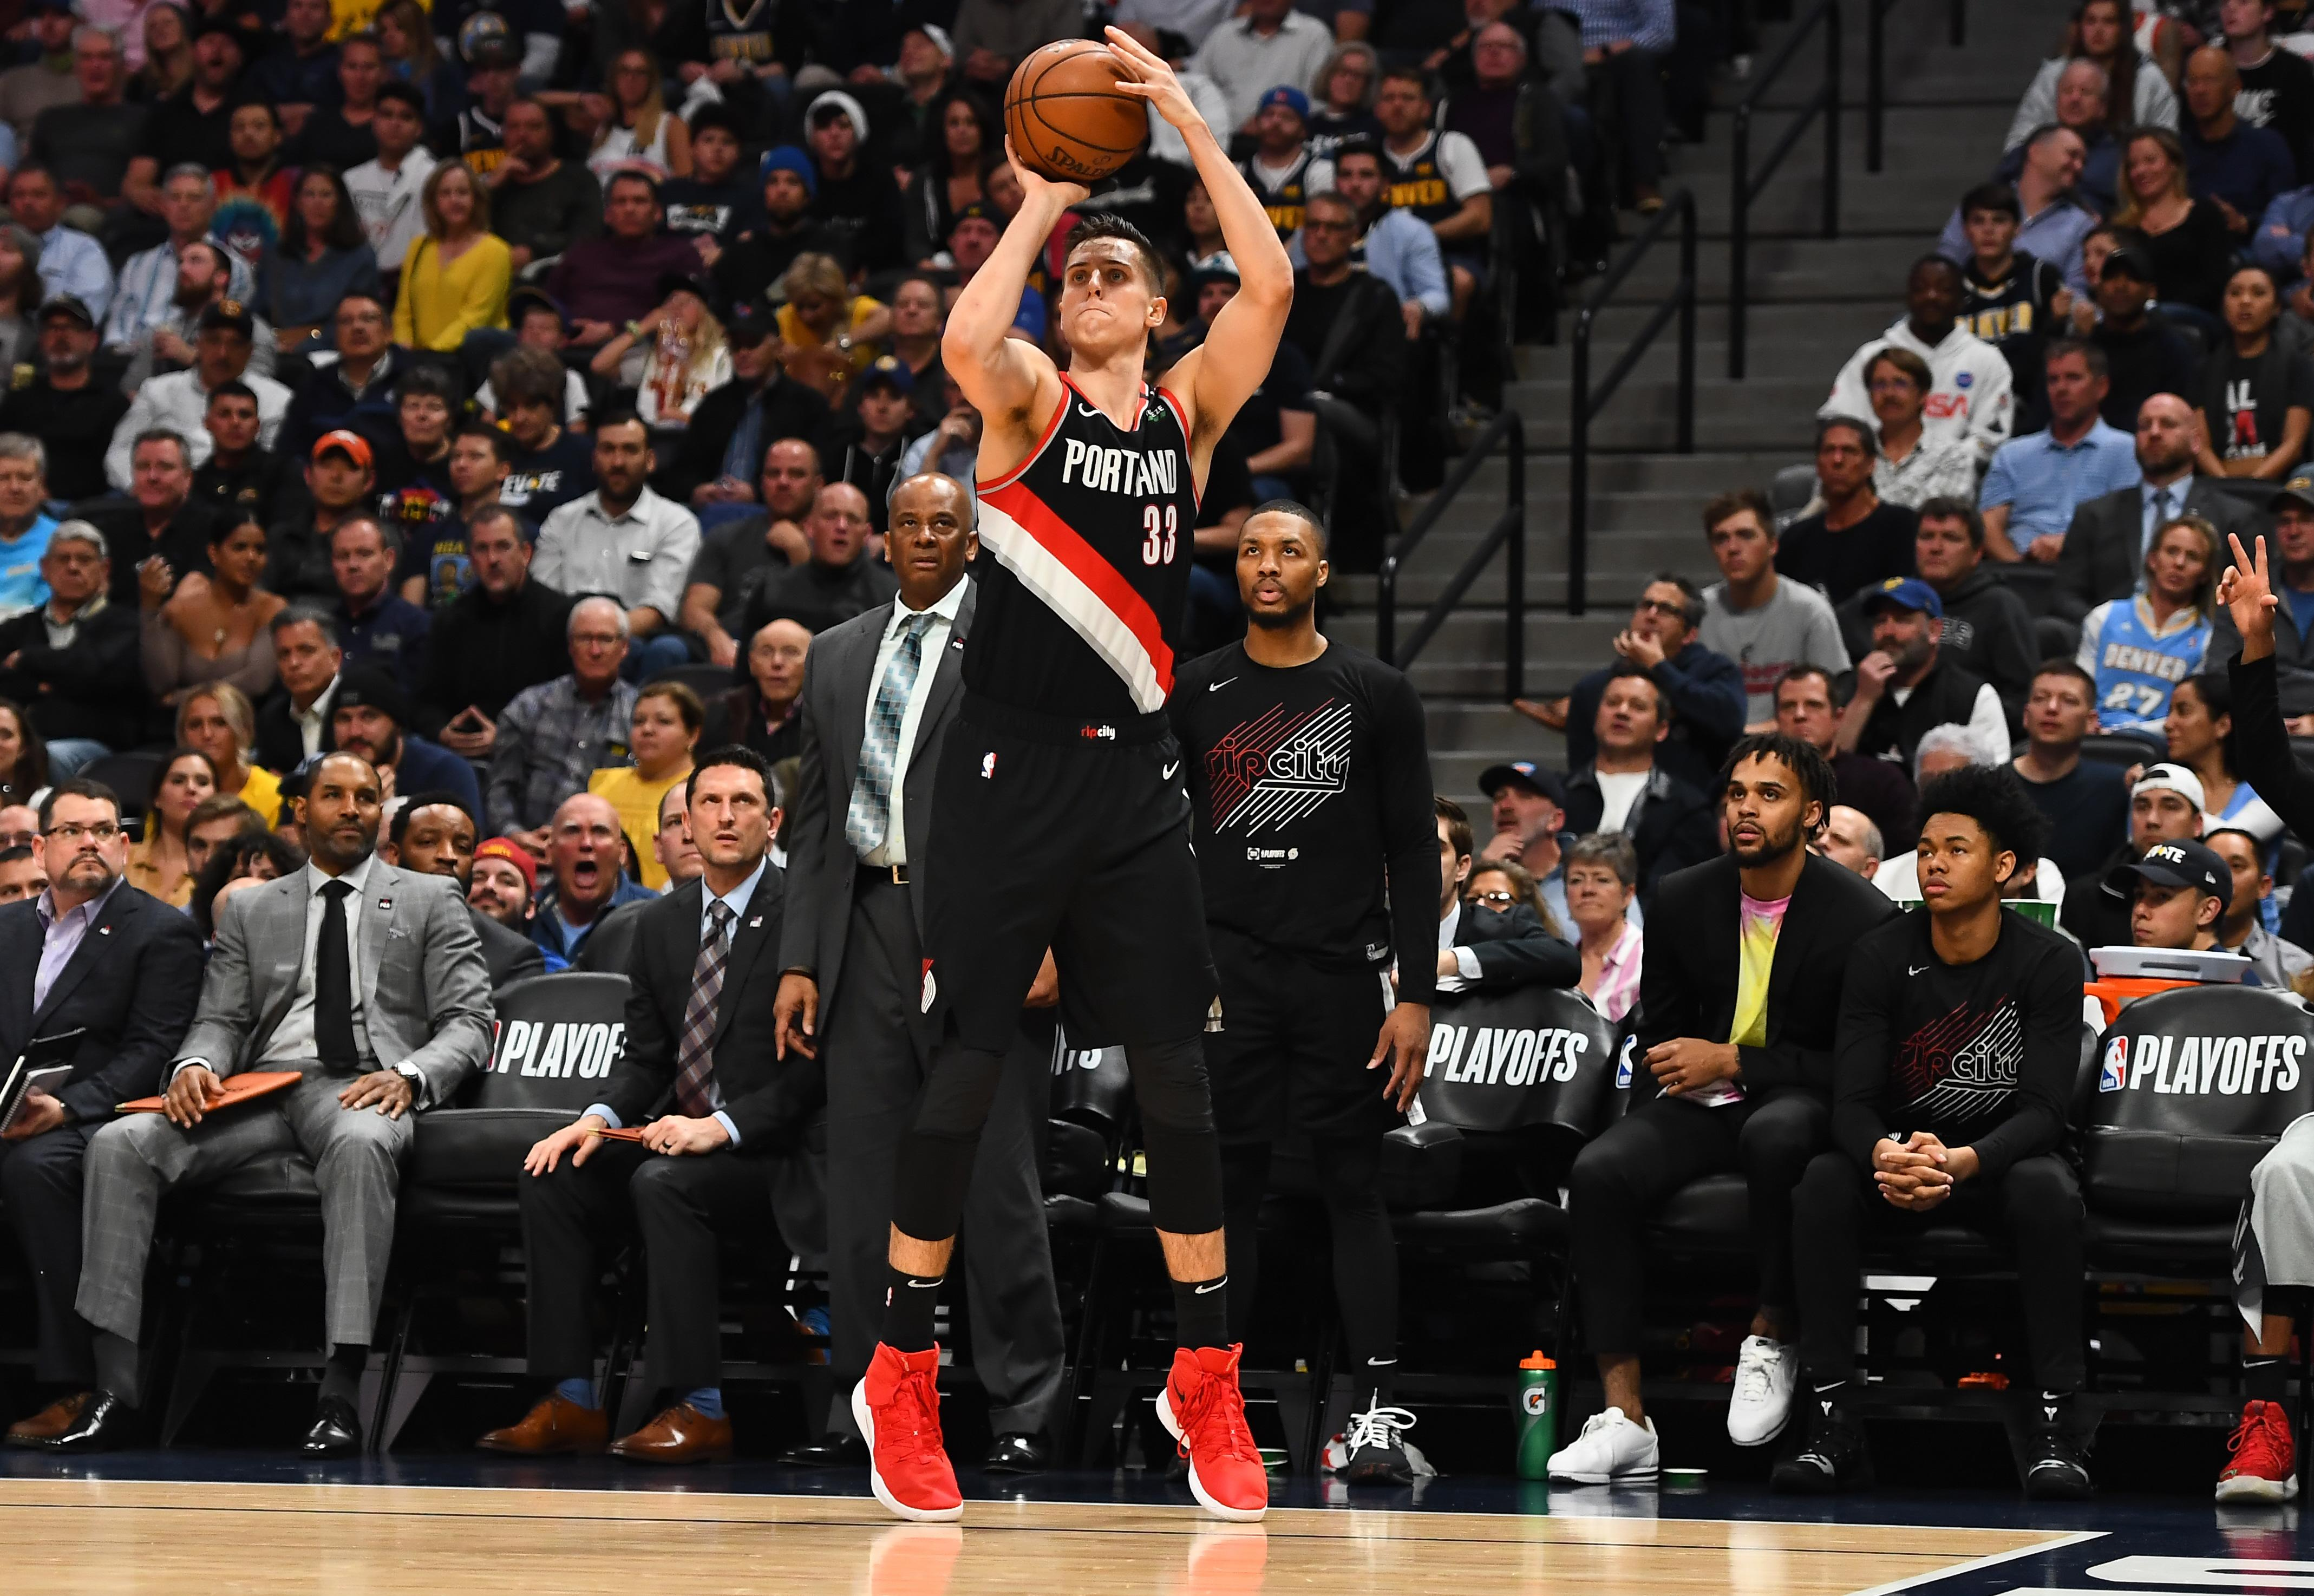 The Scoop: So much anticipation for this upcoming Blazers season!